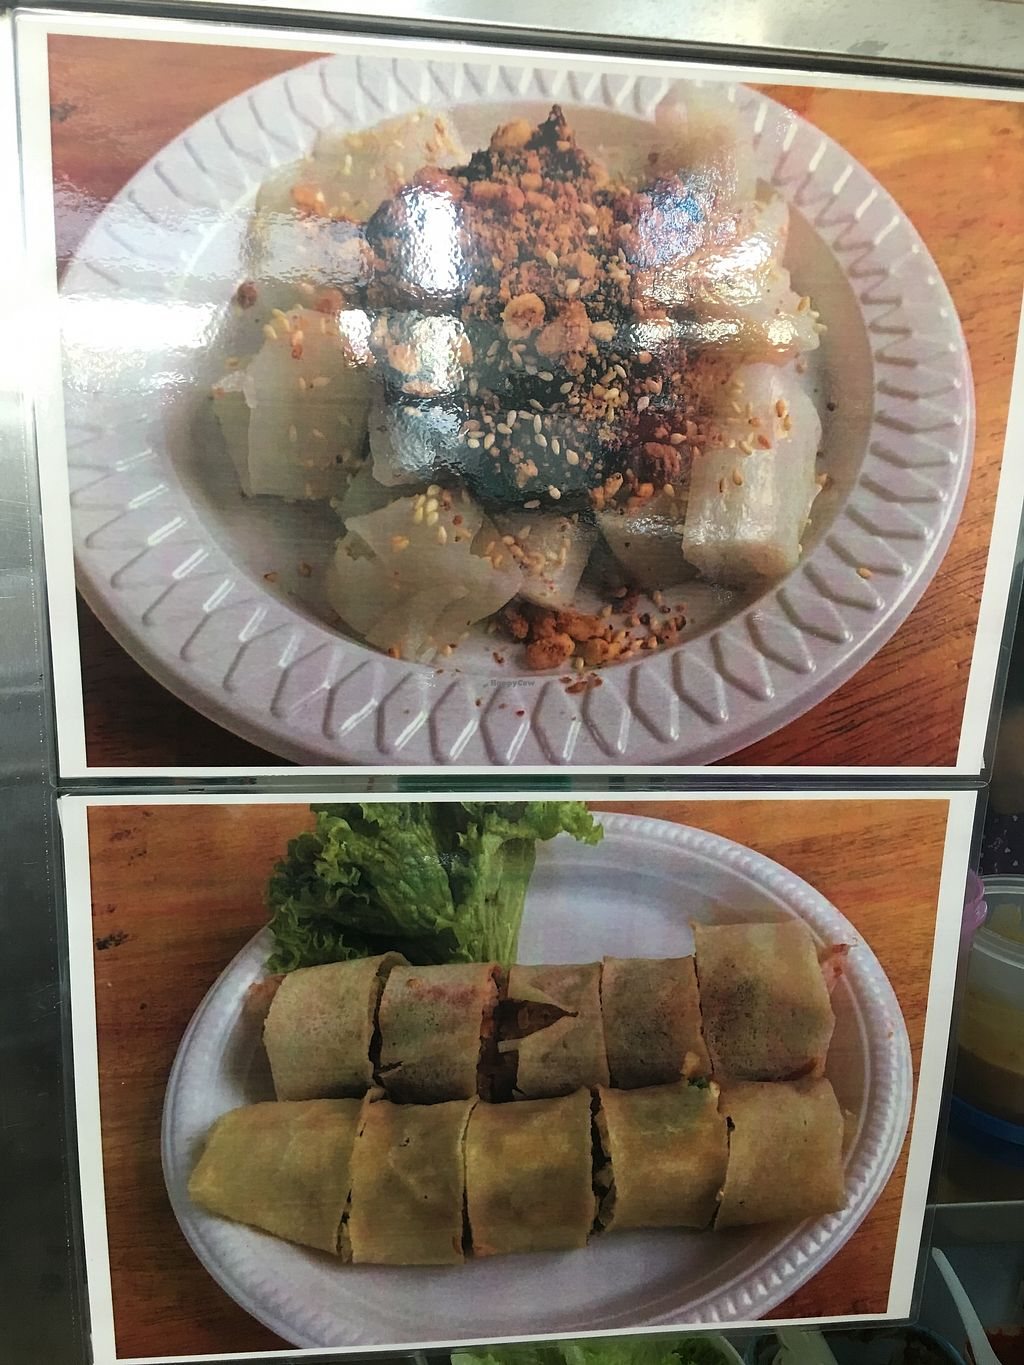 """Photo of Ming Yuan Vegetarian  by <a href=""""/members/profile/LohCheeWah"""">LohCheeWah</a> <br/>茗缘素食 <br/> September 2, 2017  - <a href='/contact/abuse/image/87457/299906'>Report</a>"""